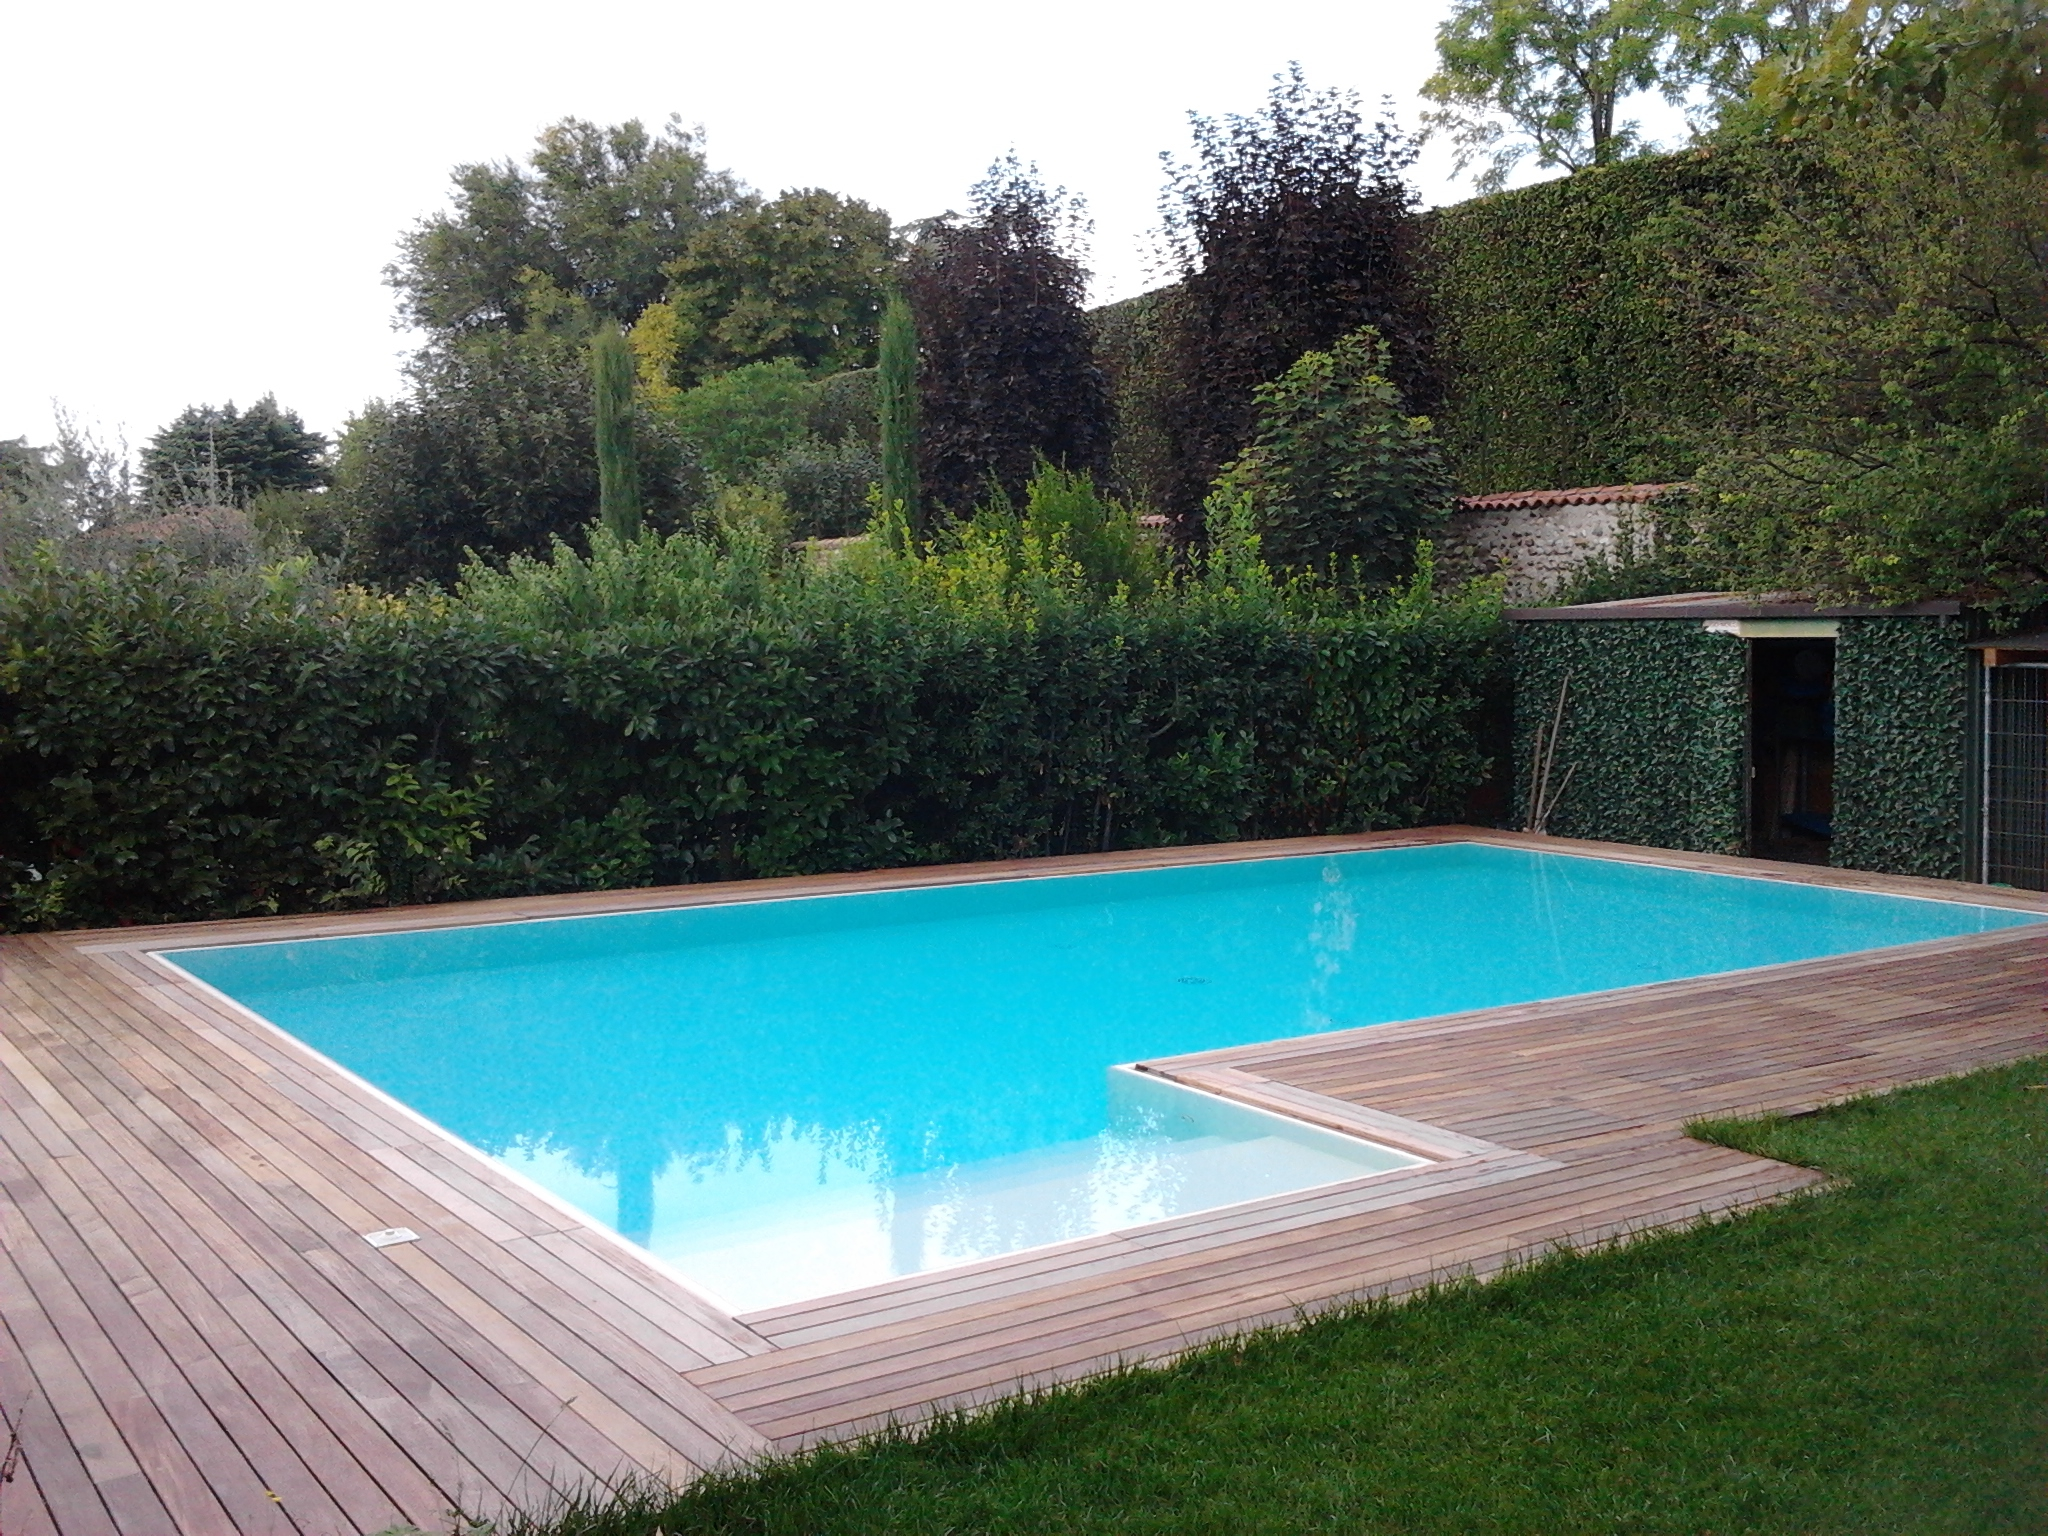 2013 09 20 for Bordi per piscine